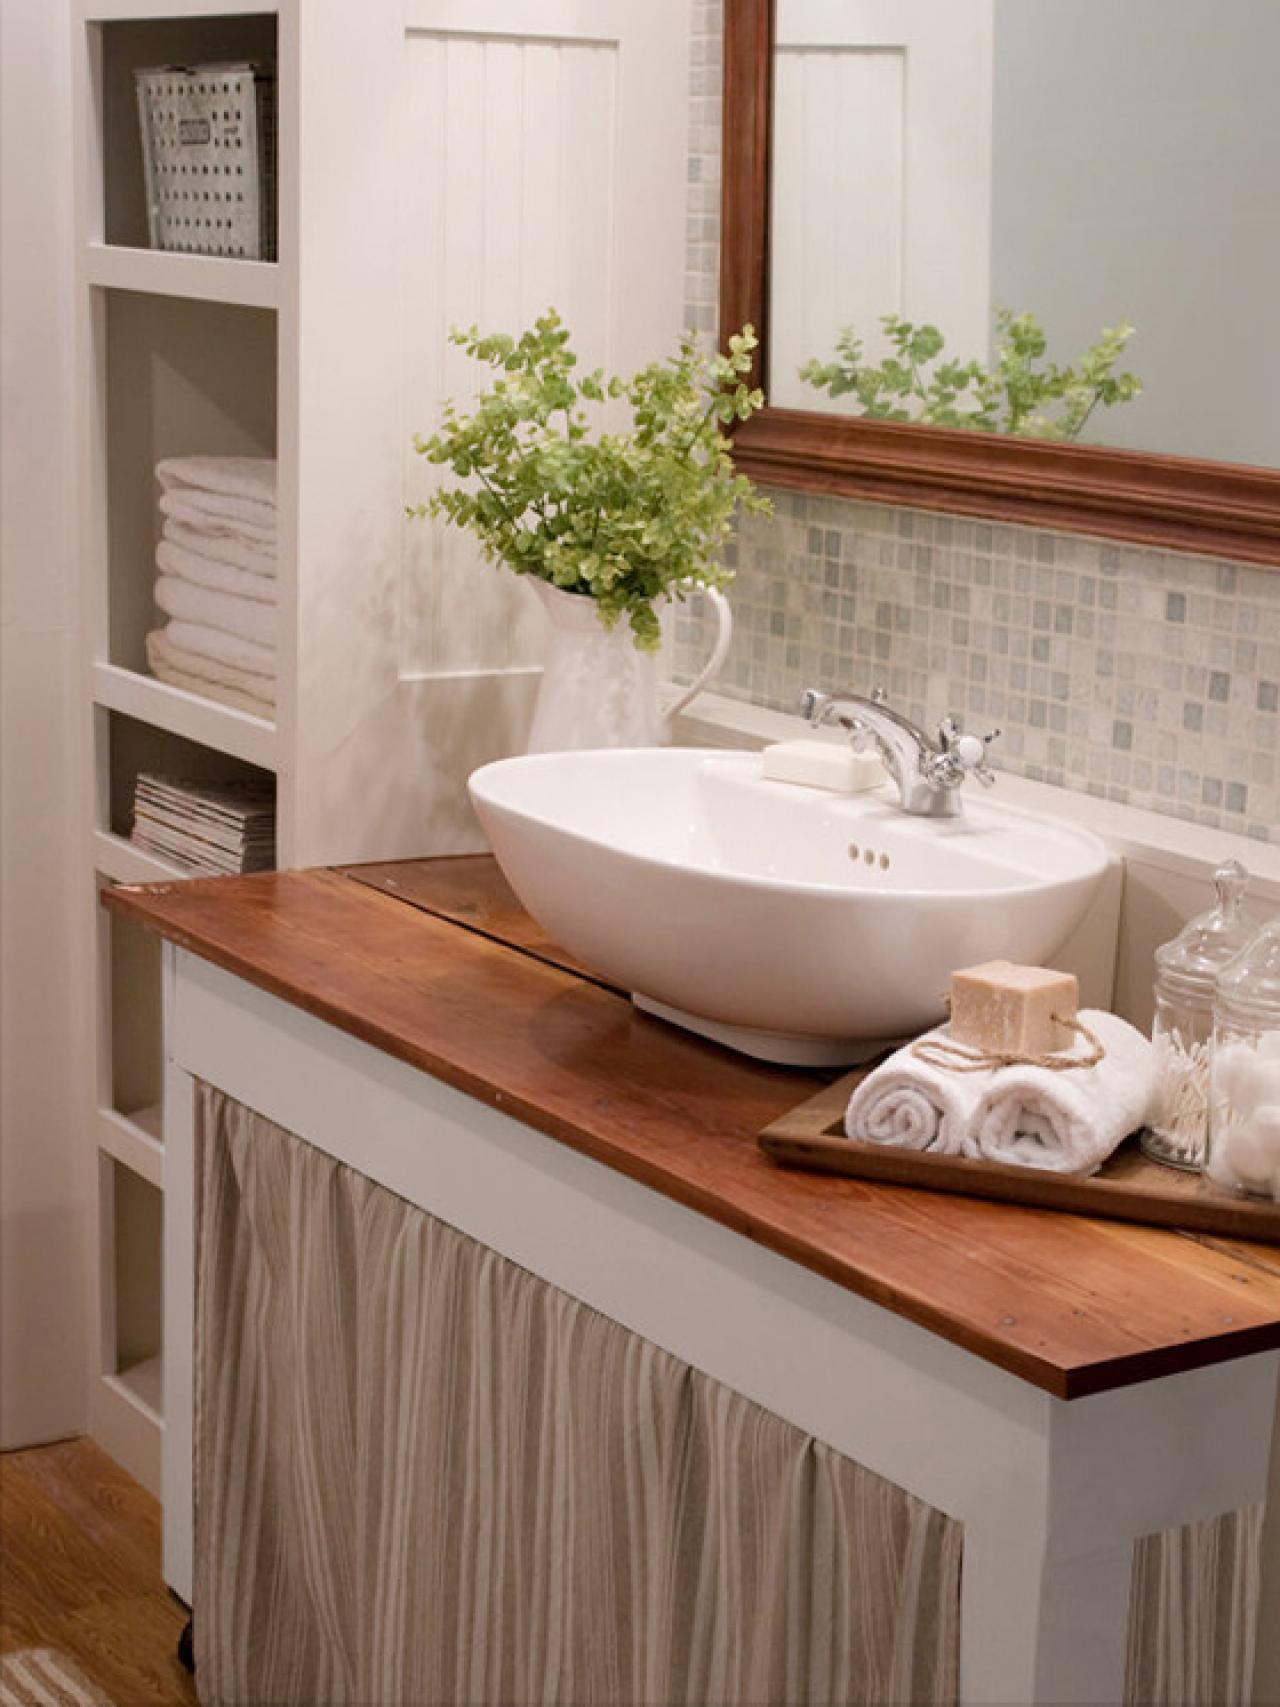 Decorating A Small Bathroom Small Bathroom Decorating Ideas  Hgtv